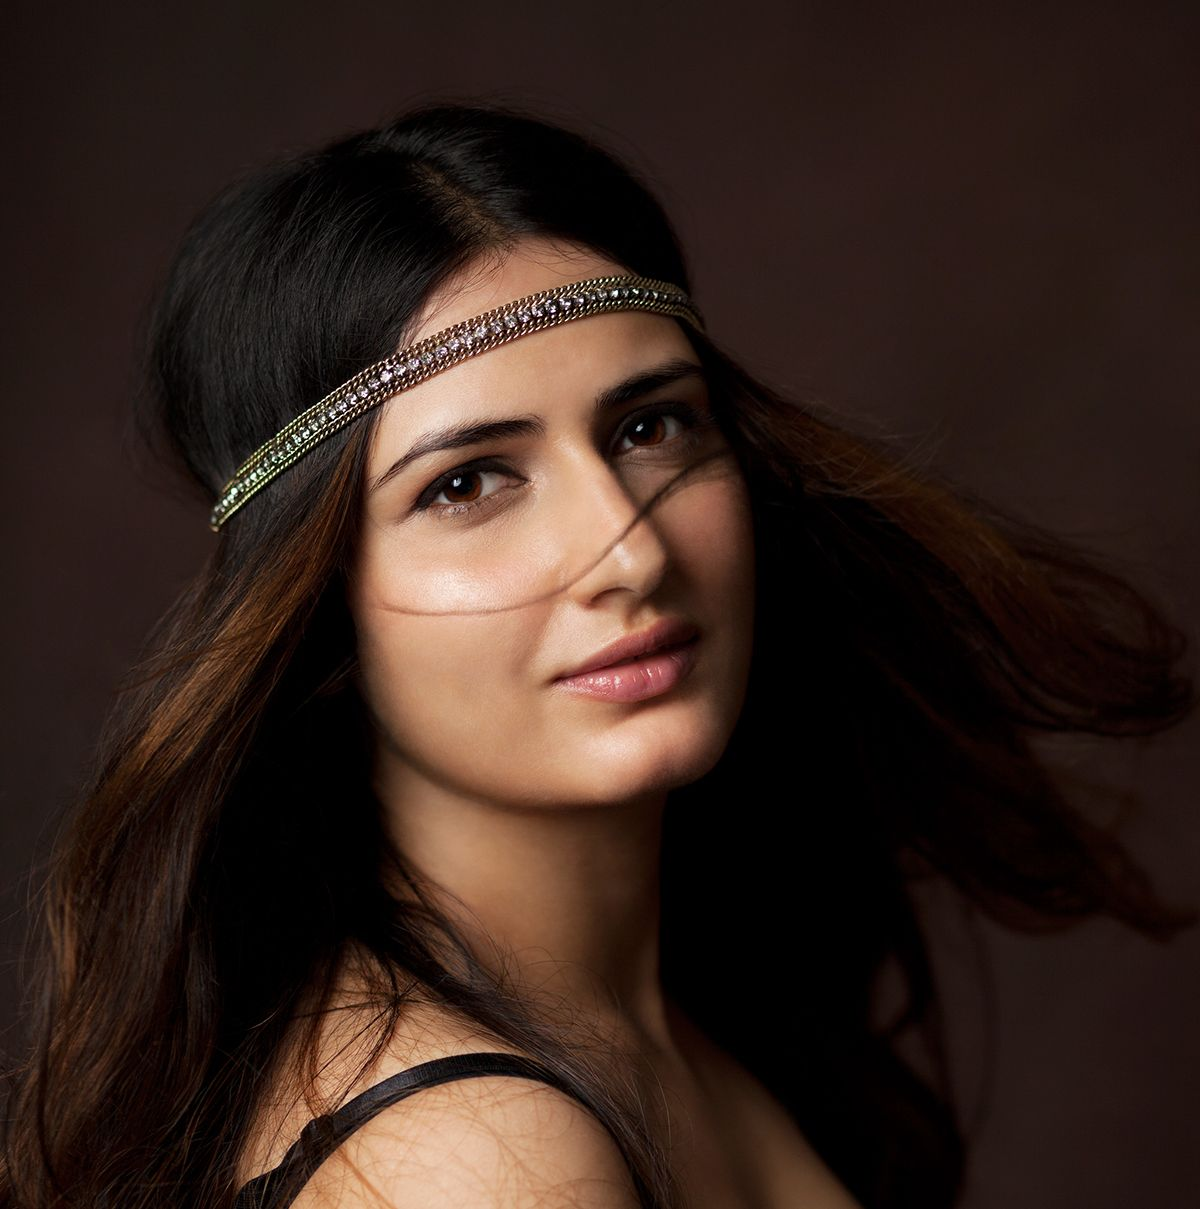 'Dangal' actress Fatima Sana Shaikh Full HQ Photos & Wallpapers